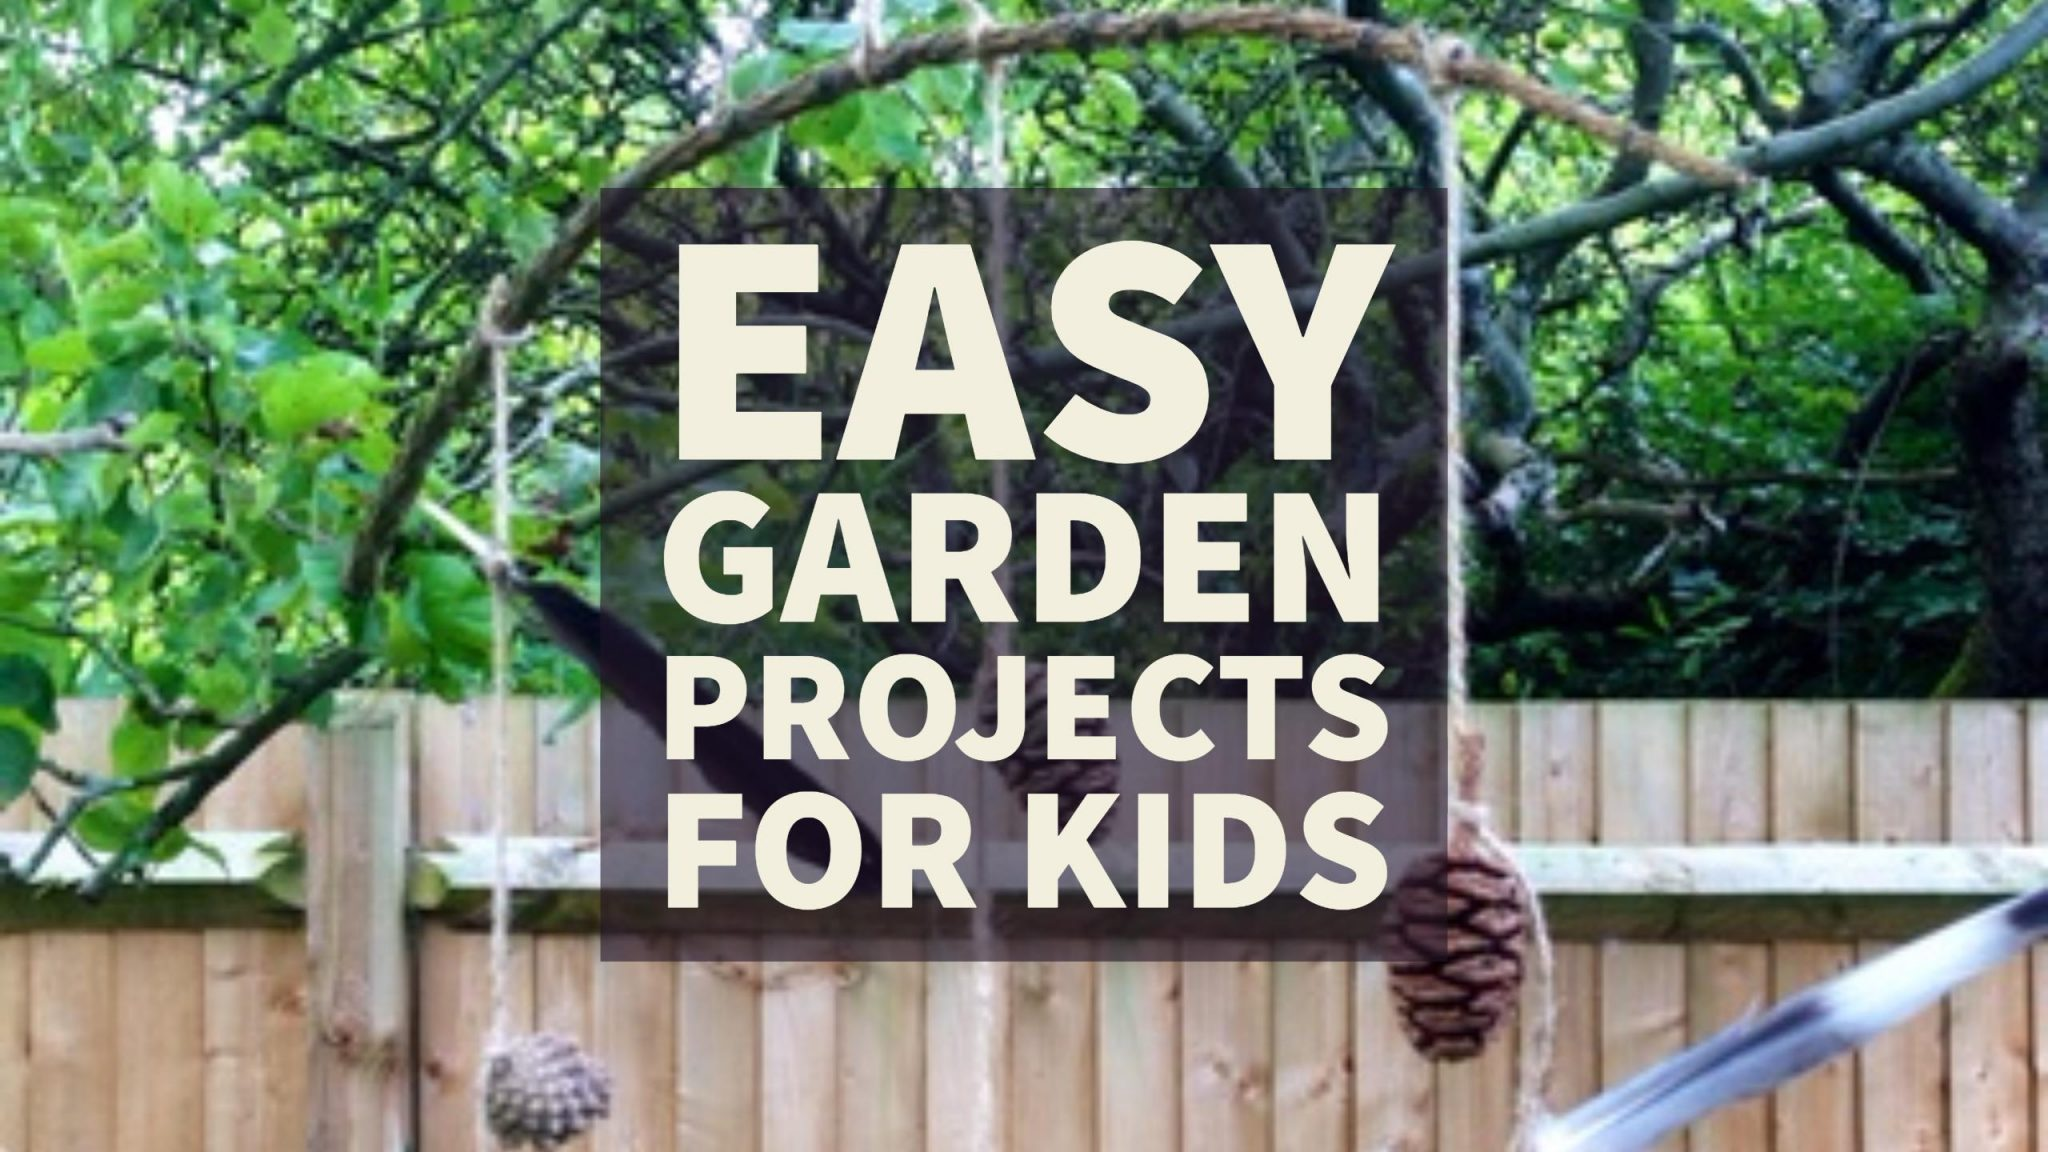 Easy Garden Projects For Kids - Red Kite Days